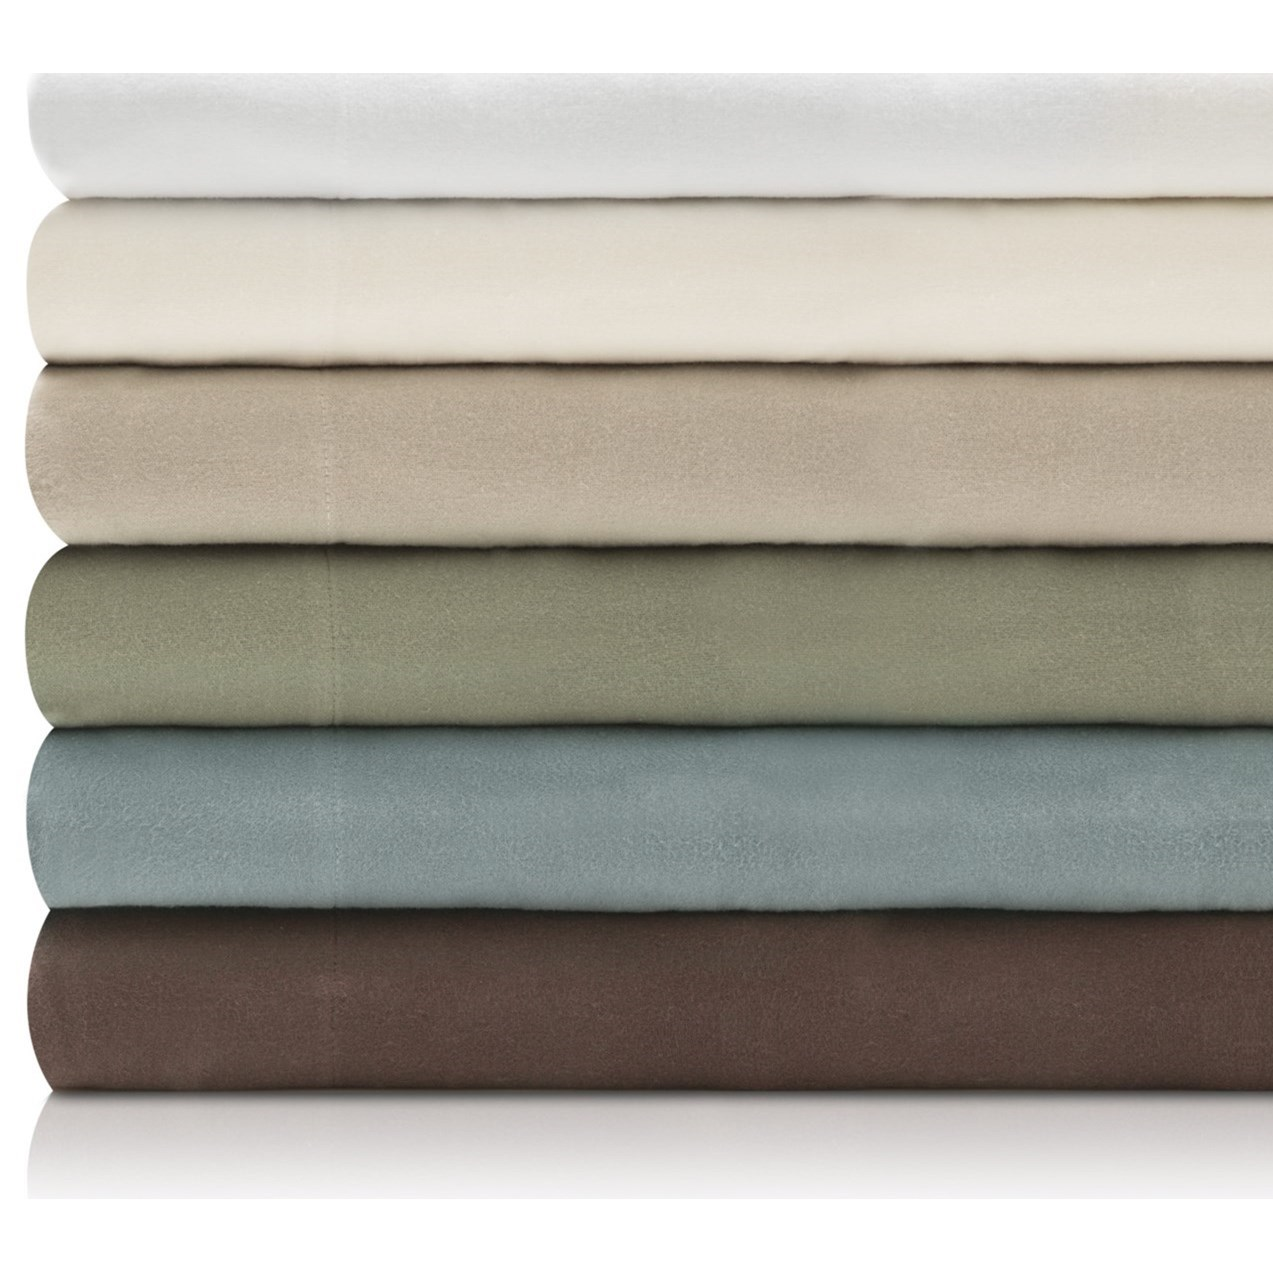 Malouf Portuguese Flannel Queen Woven™ Portuguese Flannel Pillowcases  - Item Number: WO19QQIVFC